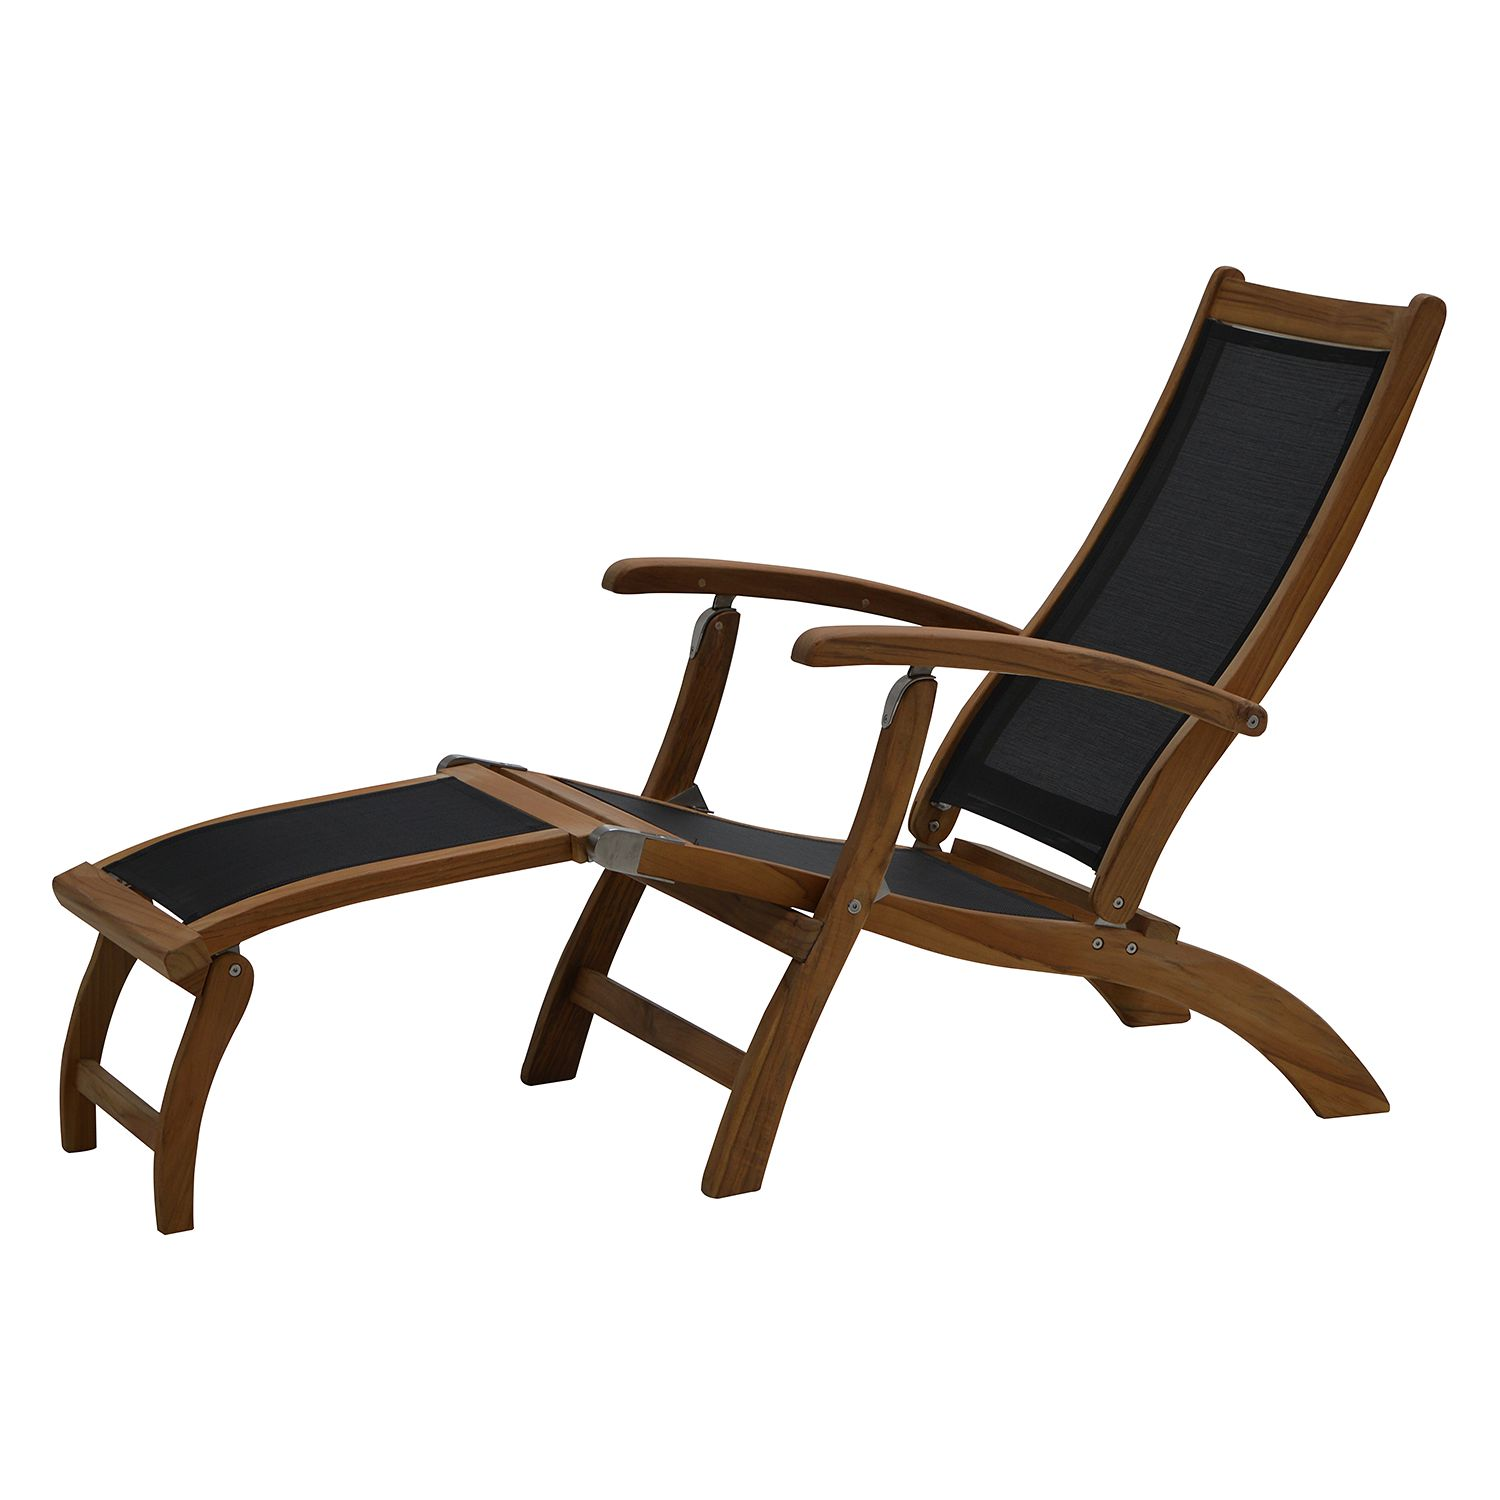 deckchair fairchild textilene teak massiv schwarz. Black Bedroom Furniture Sets. Home Design Ideas